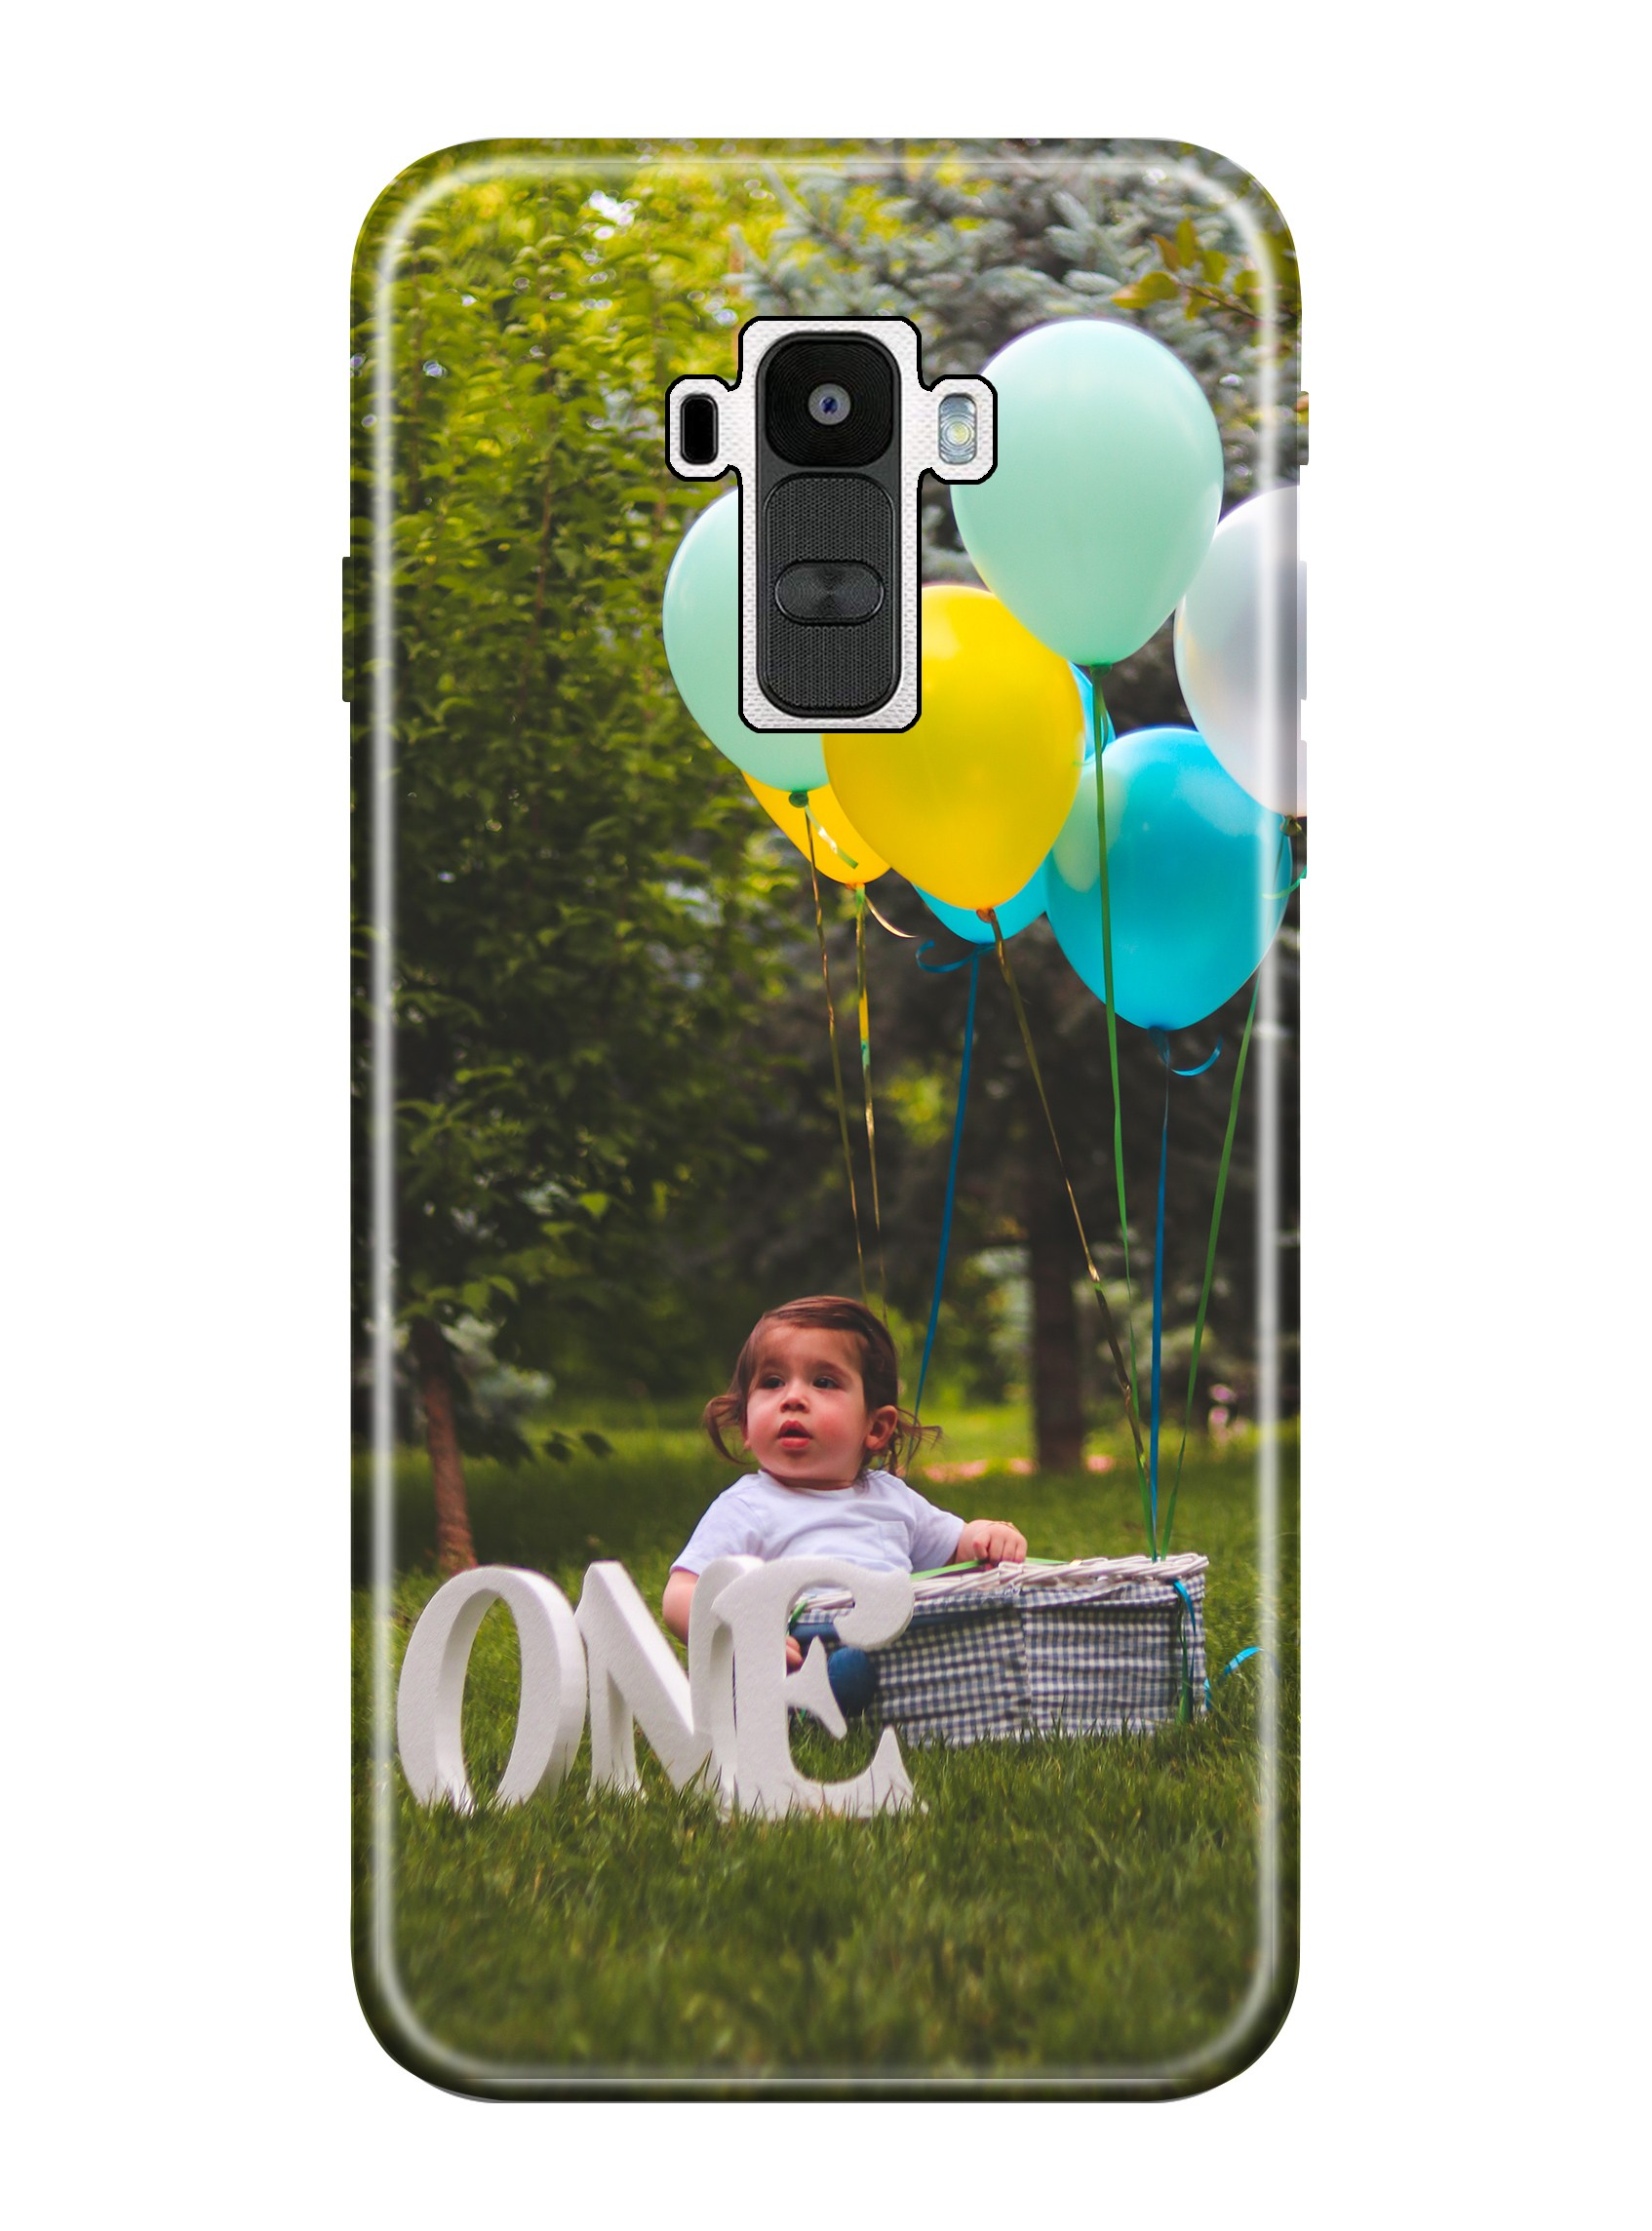 Personalised Case for LG G4 Stylus